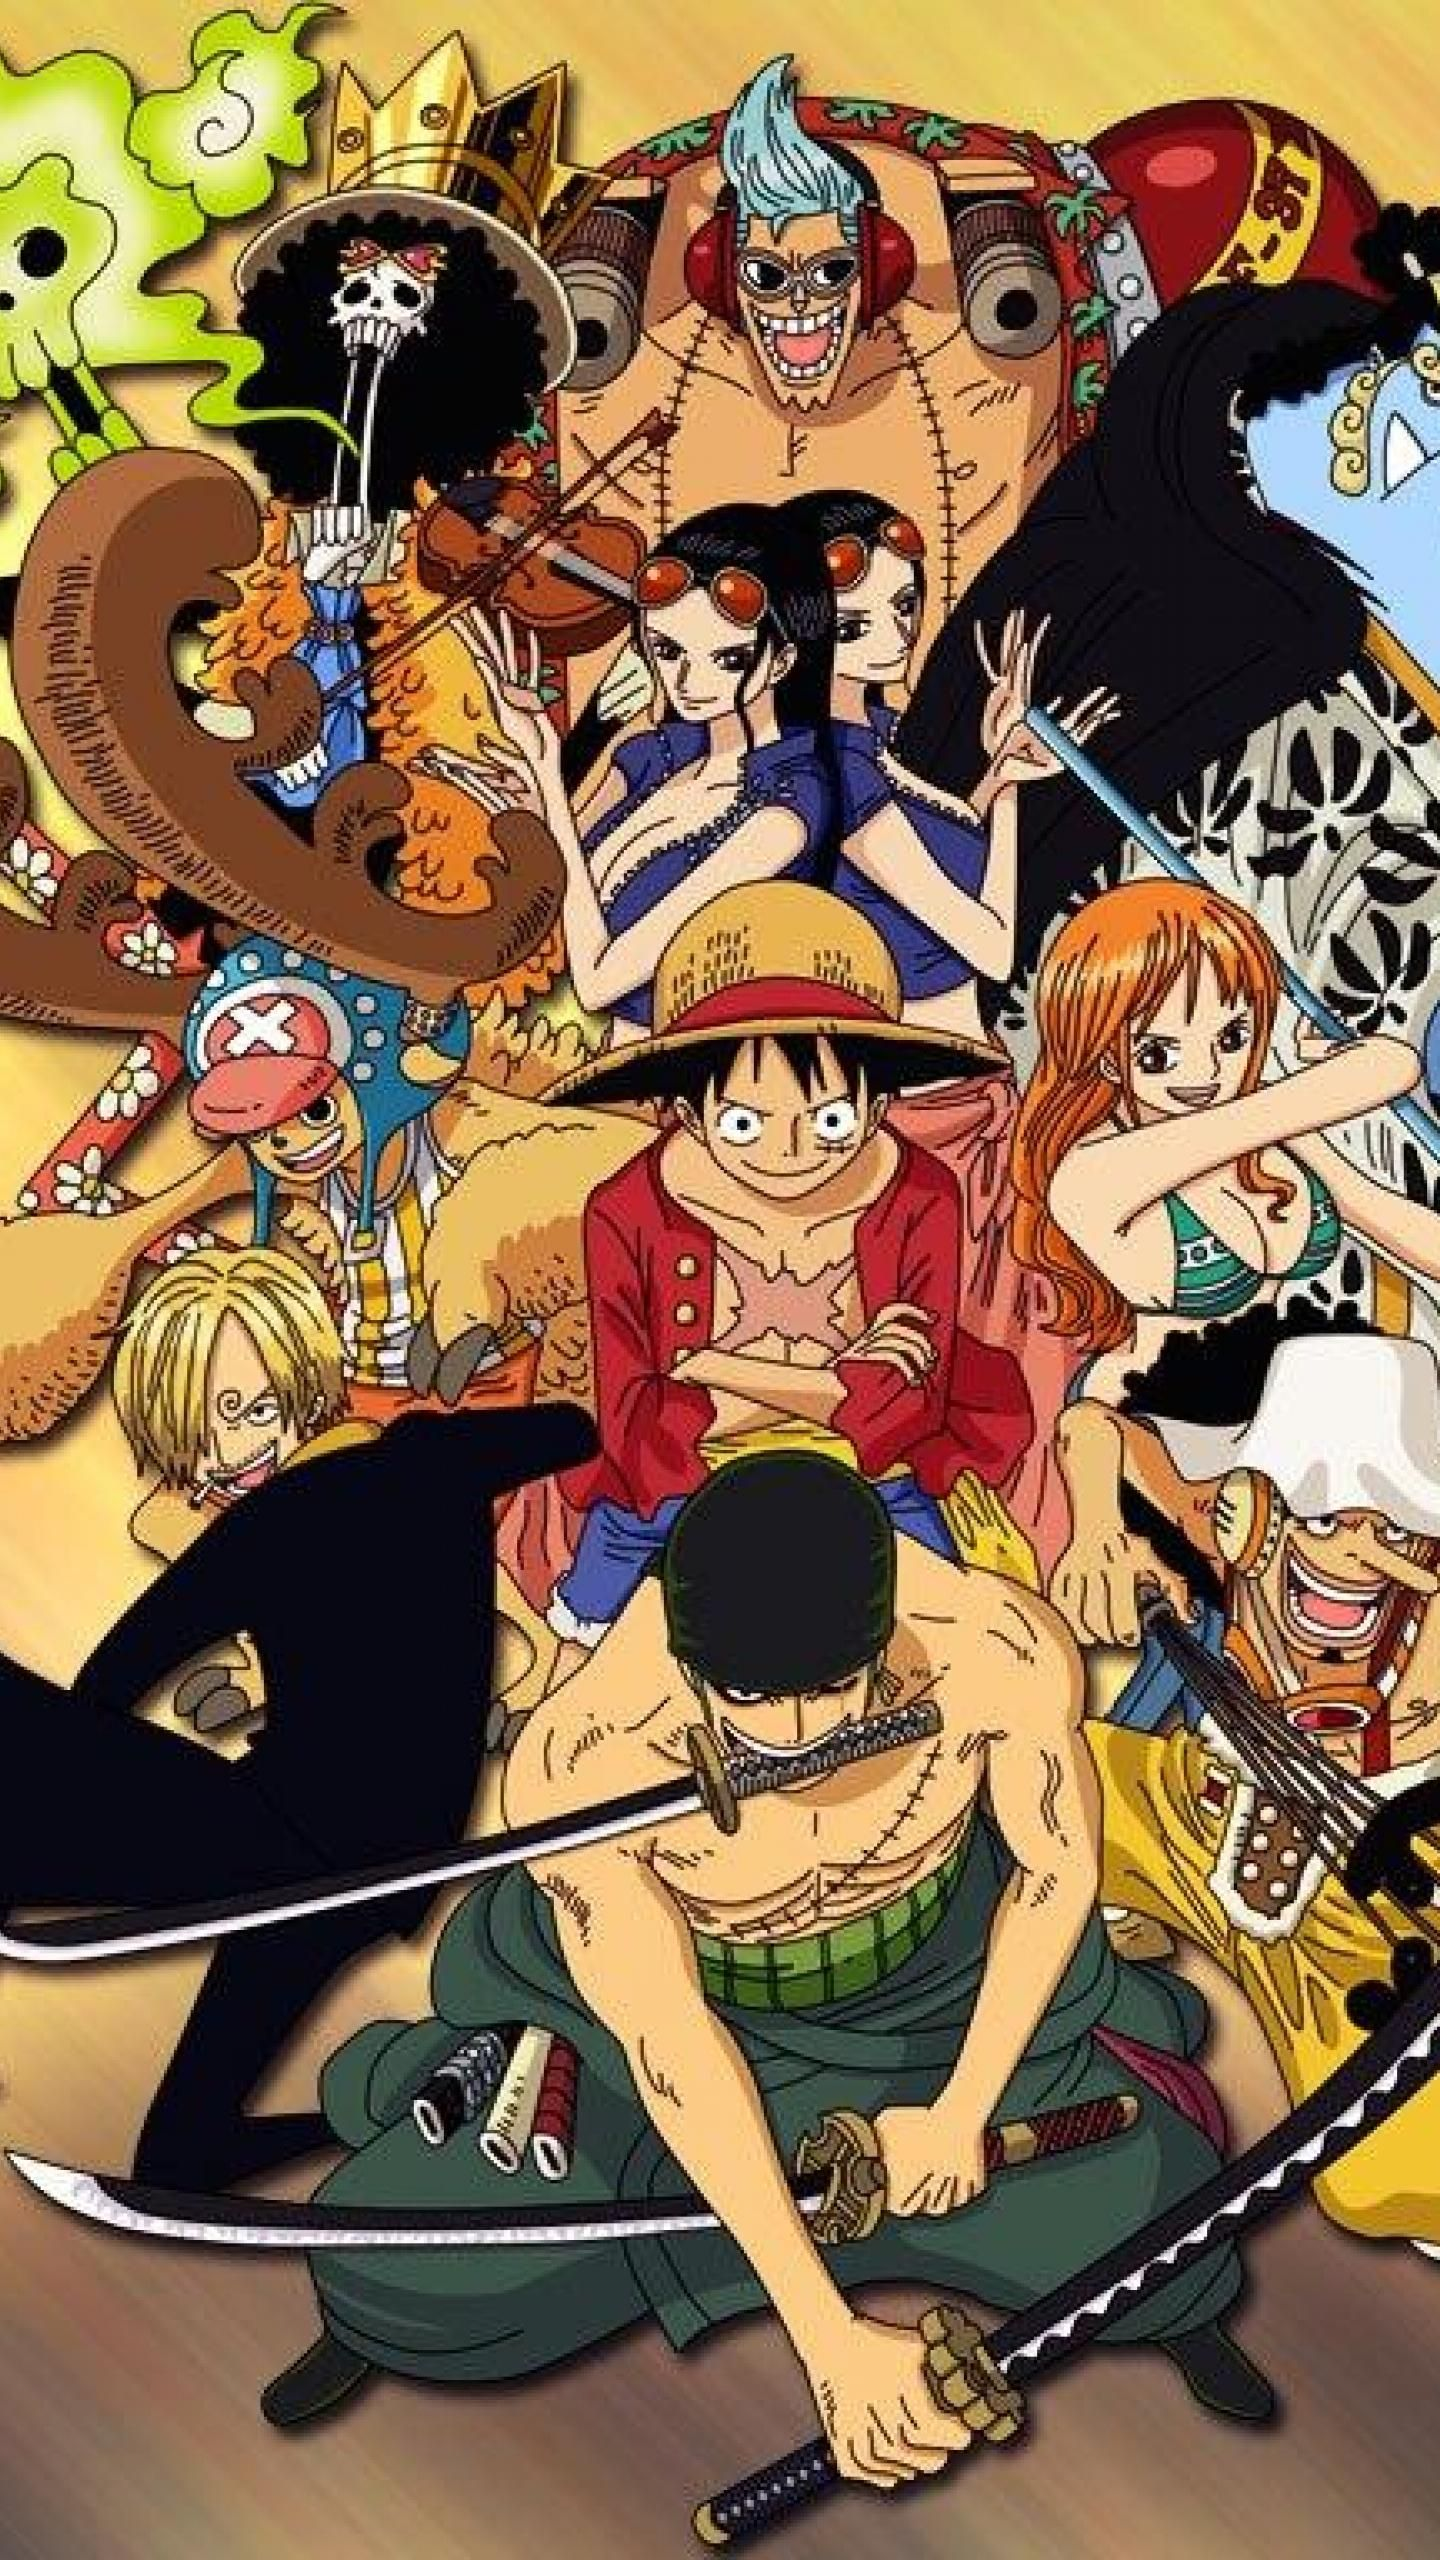 One Piece Wallpapers Widescreen Click Wallpapers One Piece Ace One Piece New World Hd Anime Wallpapers